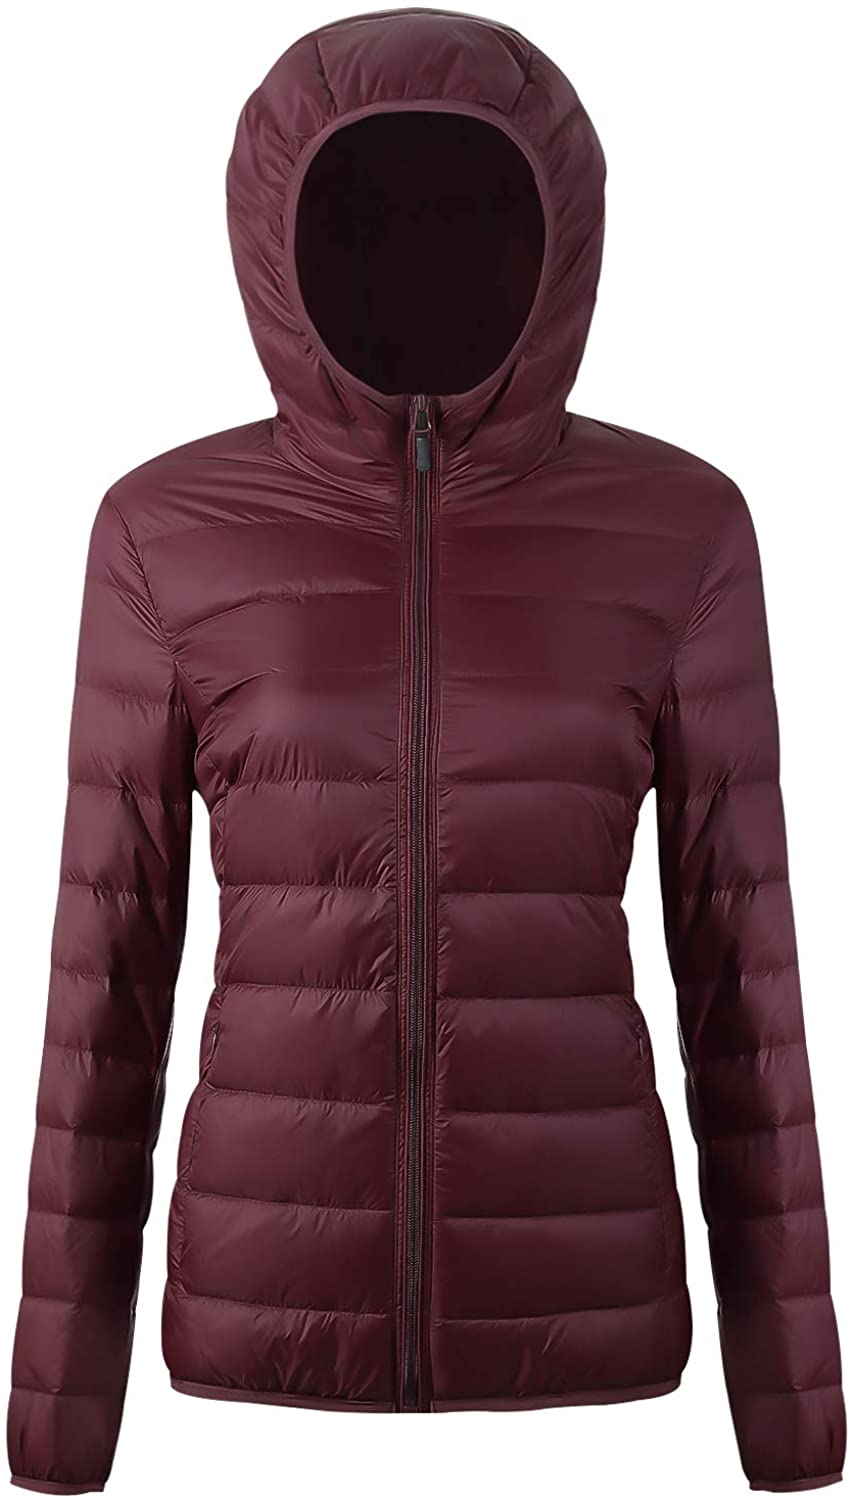 EQUICK Women's Hooded Puffer Packable Down Jacket Ultra Light Weight Short Coat with Travel Bag U219WYRF026,Wine.Red,XS